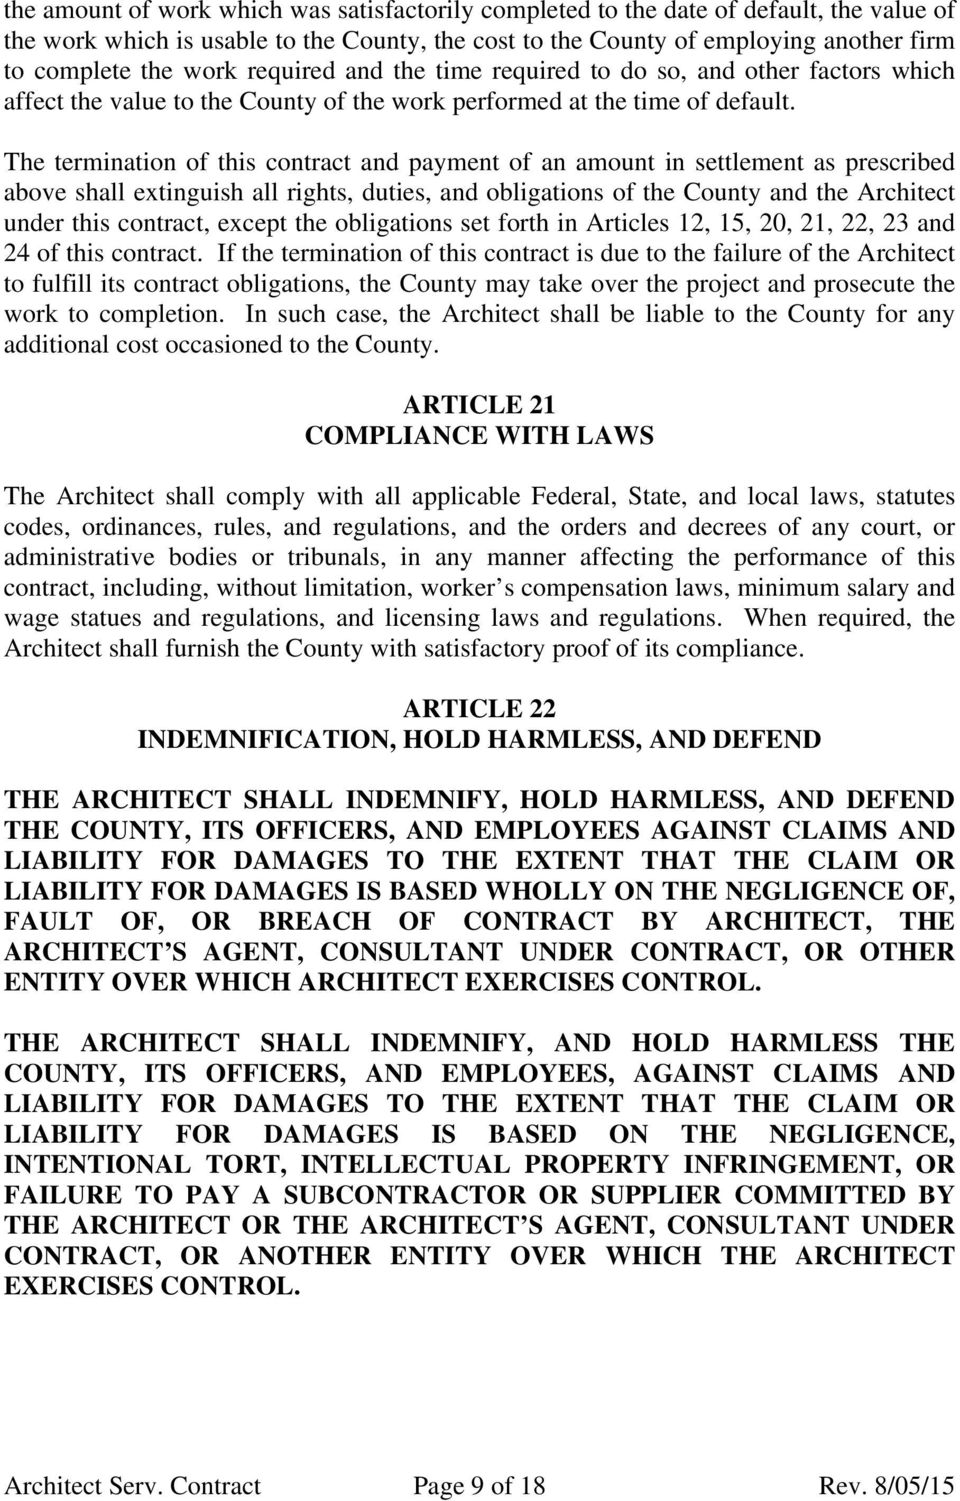 The termination of this contract and payment of an amount in settlement as prescribed above shall extinguish all rights, duties, and obligations of the County and the Architect under this contract,